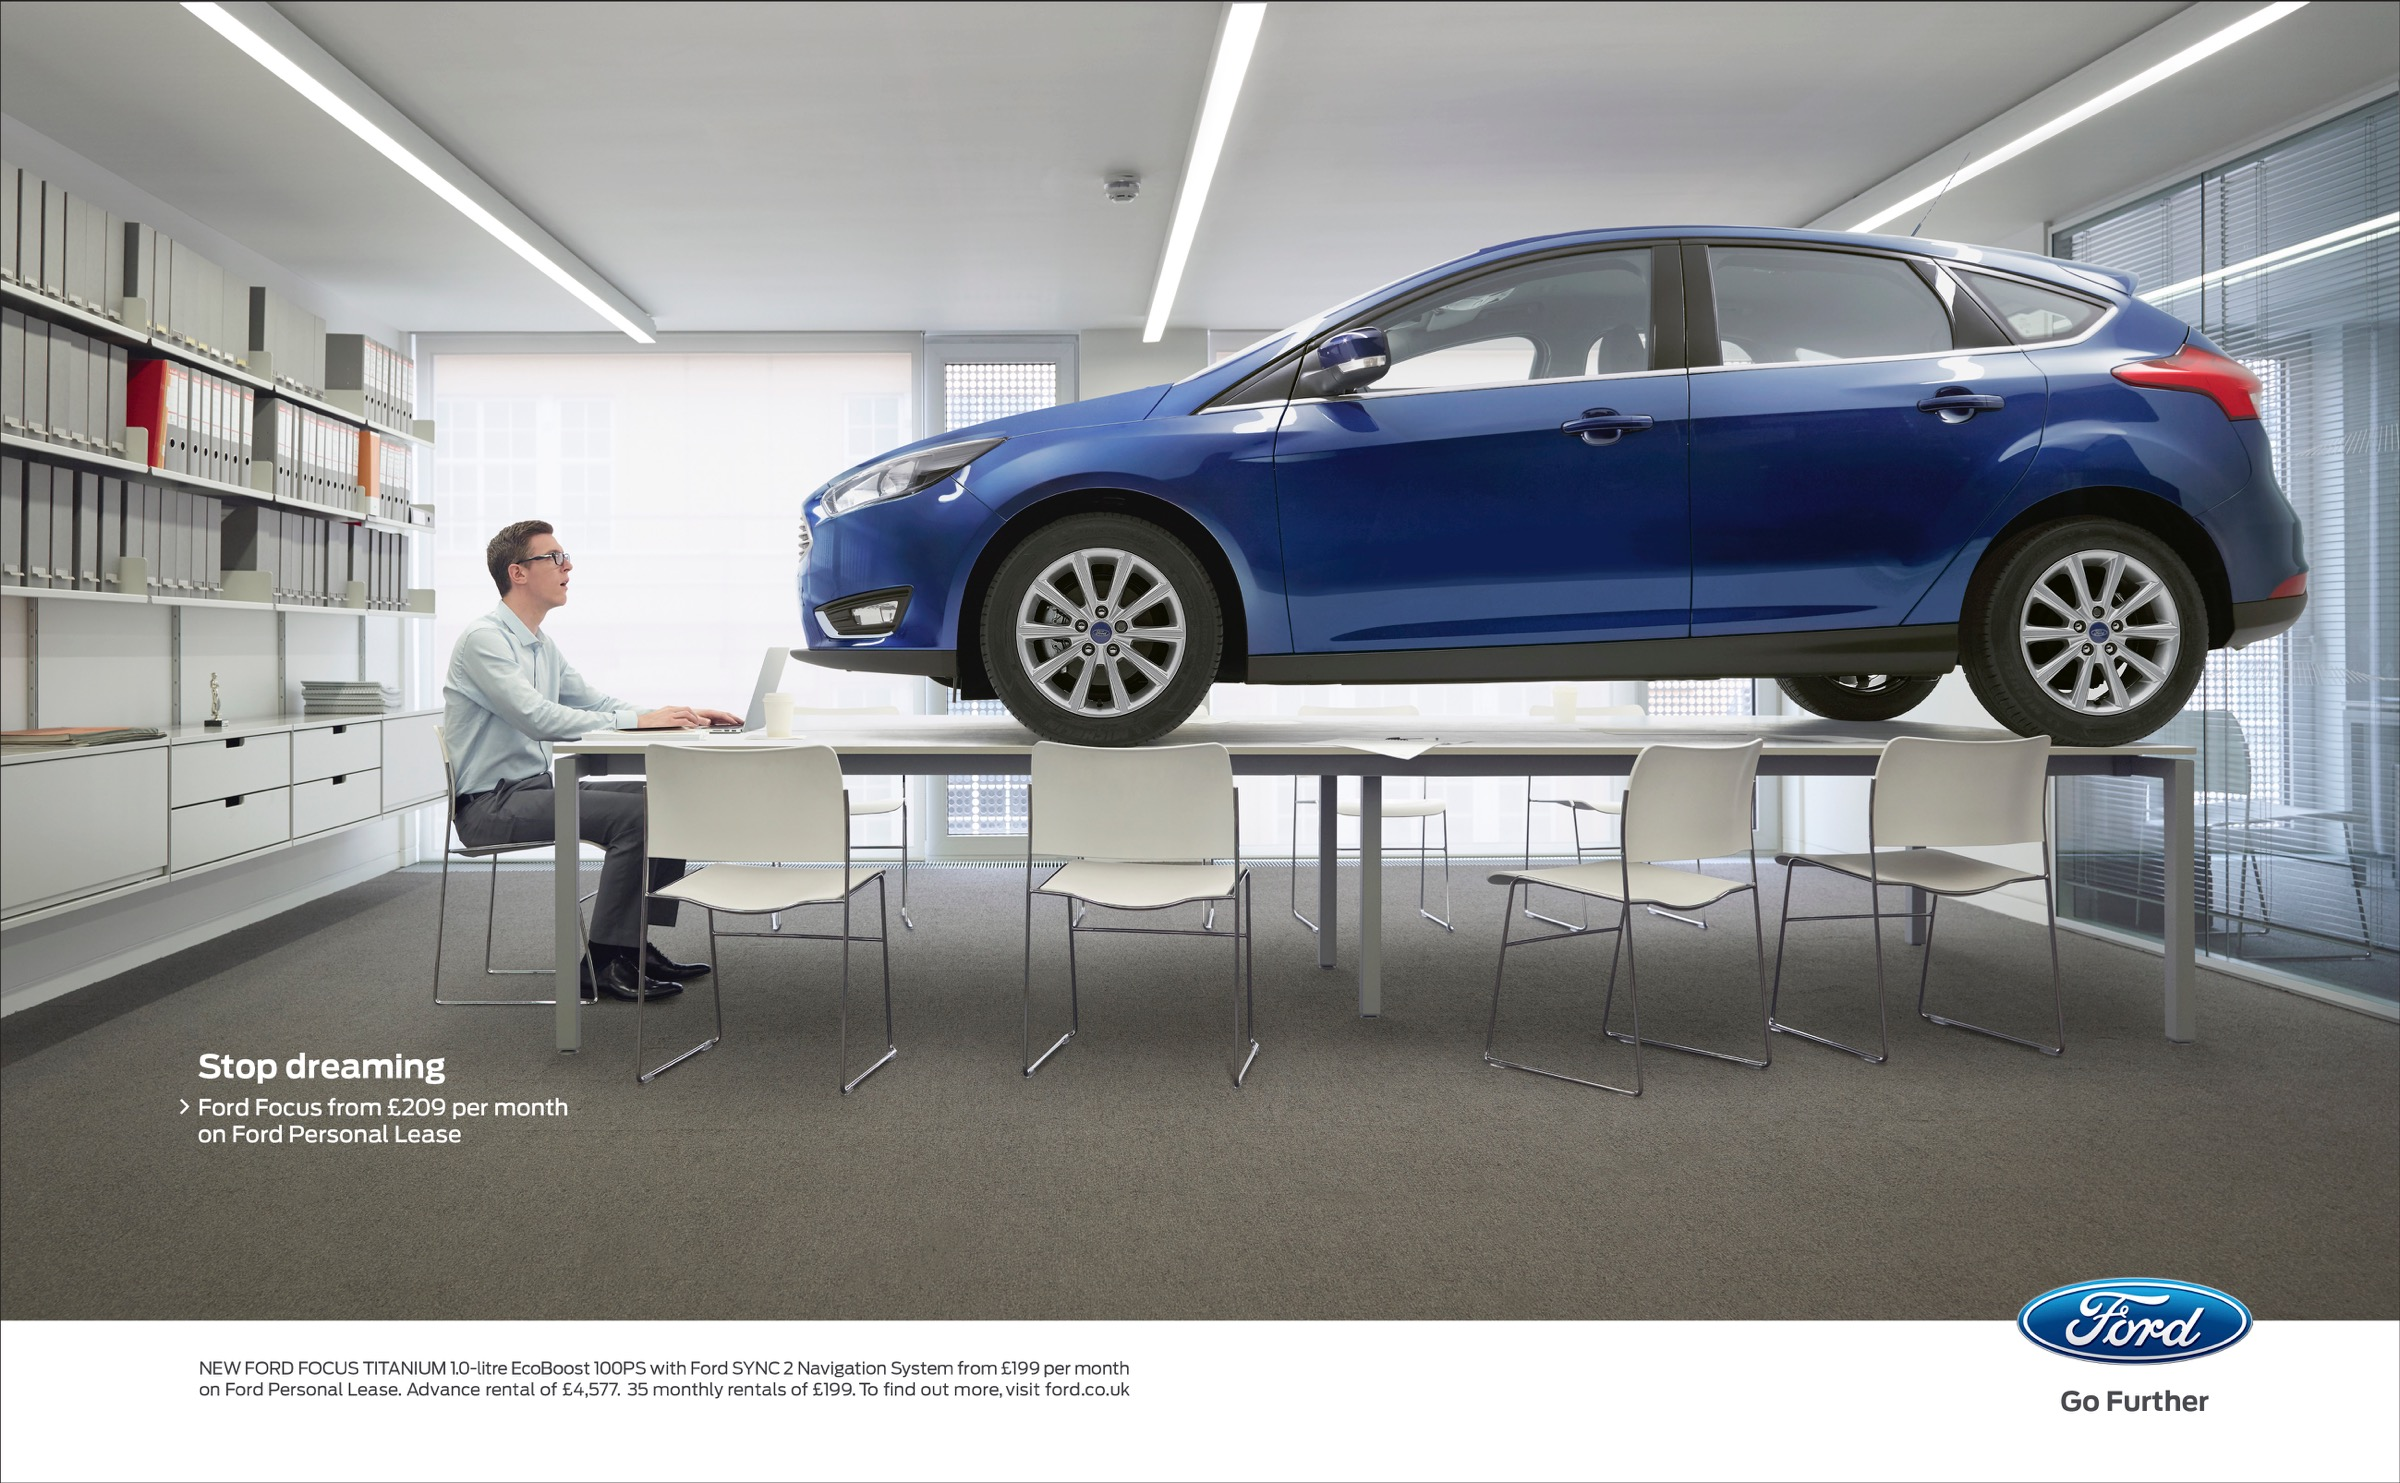 Ford Print Advert By Blue Hive Stop Dreaming 1 Ads Of The World